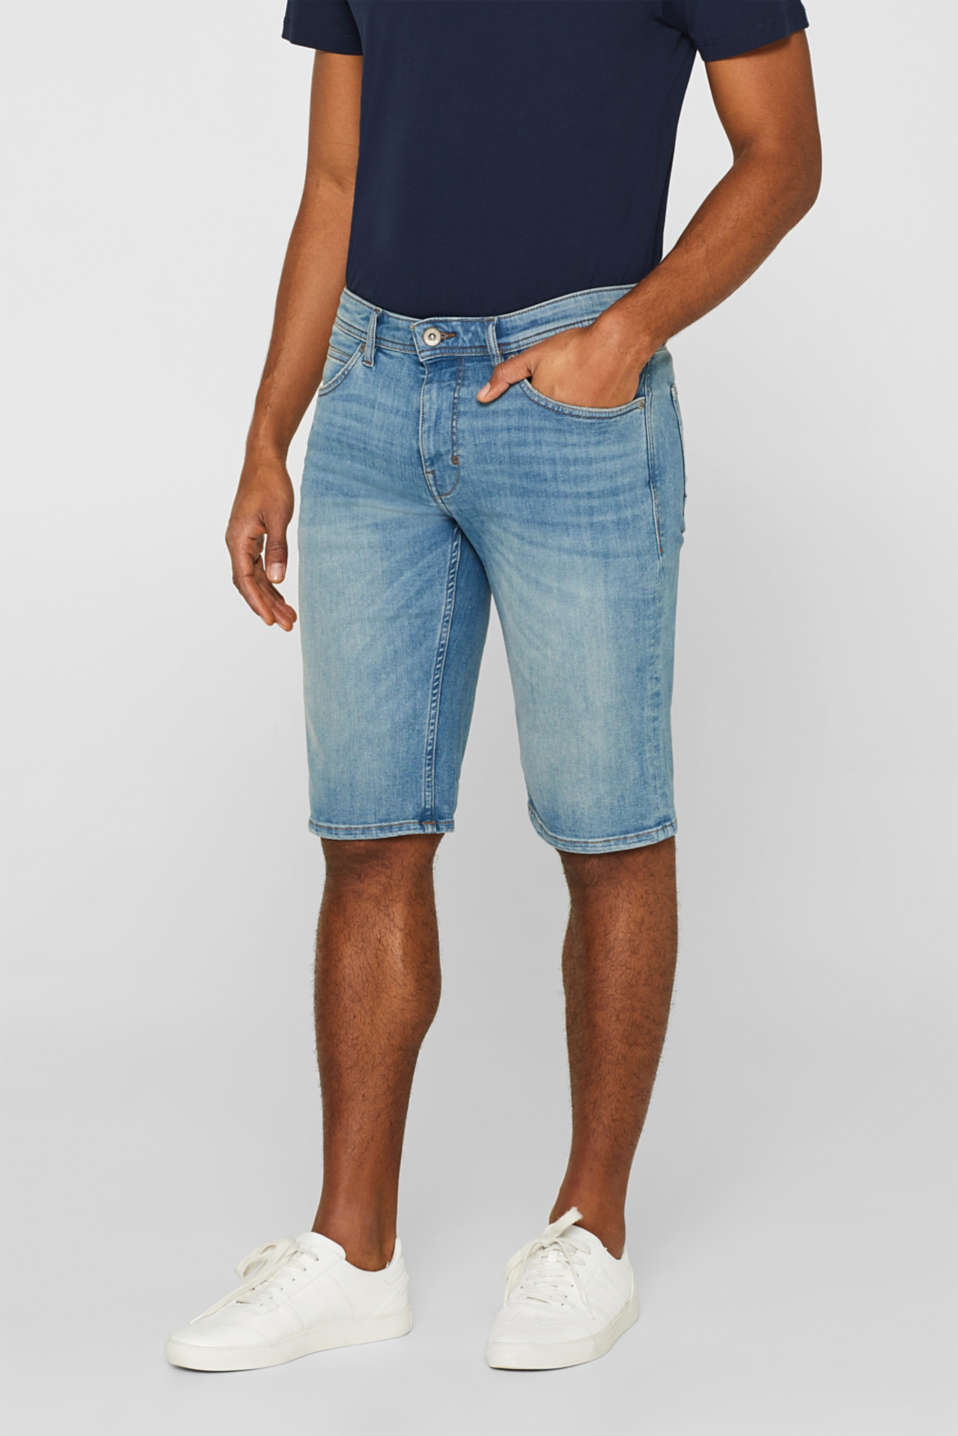 Esprit - Short en Dynamic Denim au confort super stretch